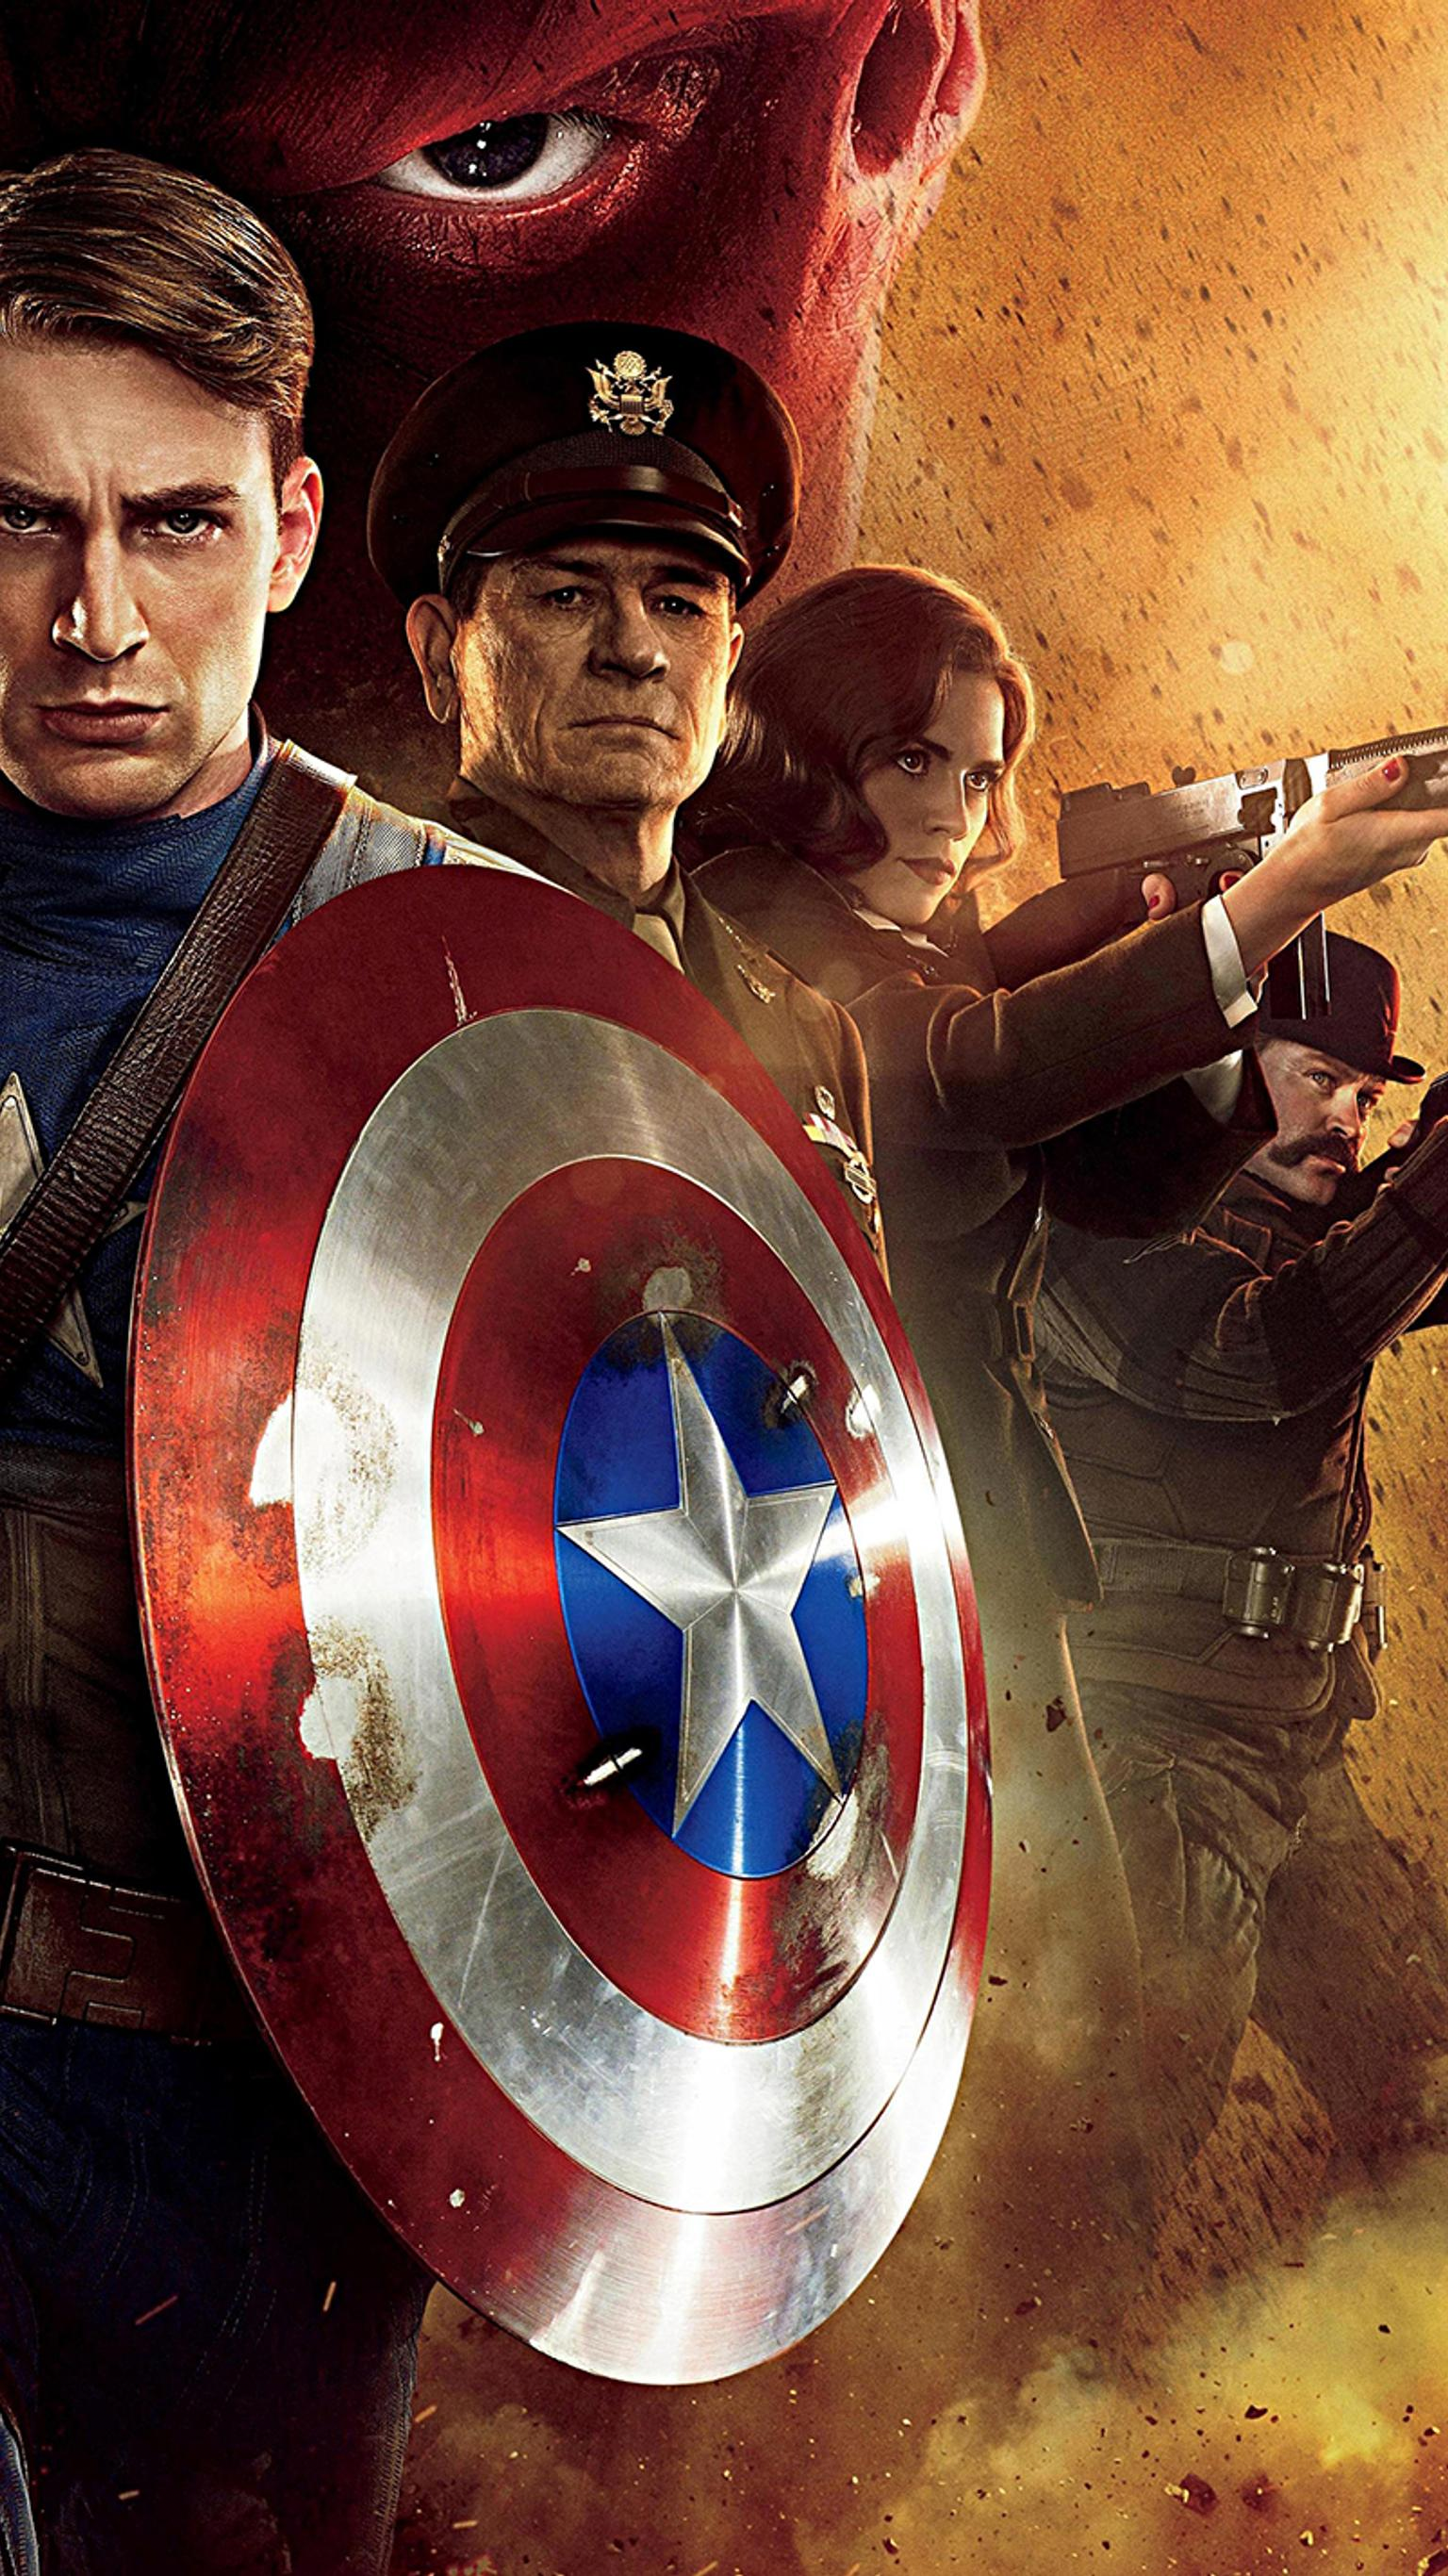 Free Download Captain America The First Avenger 2011 Phone Wallpaper Moviemania 1536x2732 For Your Desktop Mobile Tablet Explore 34 Captain America The First Avenger Wallpapers Captain America The First